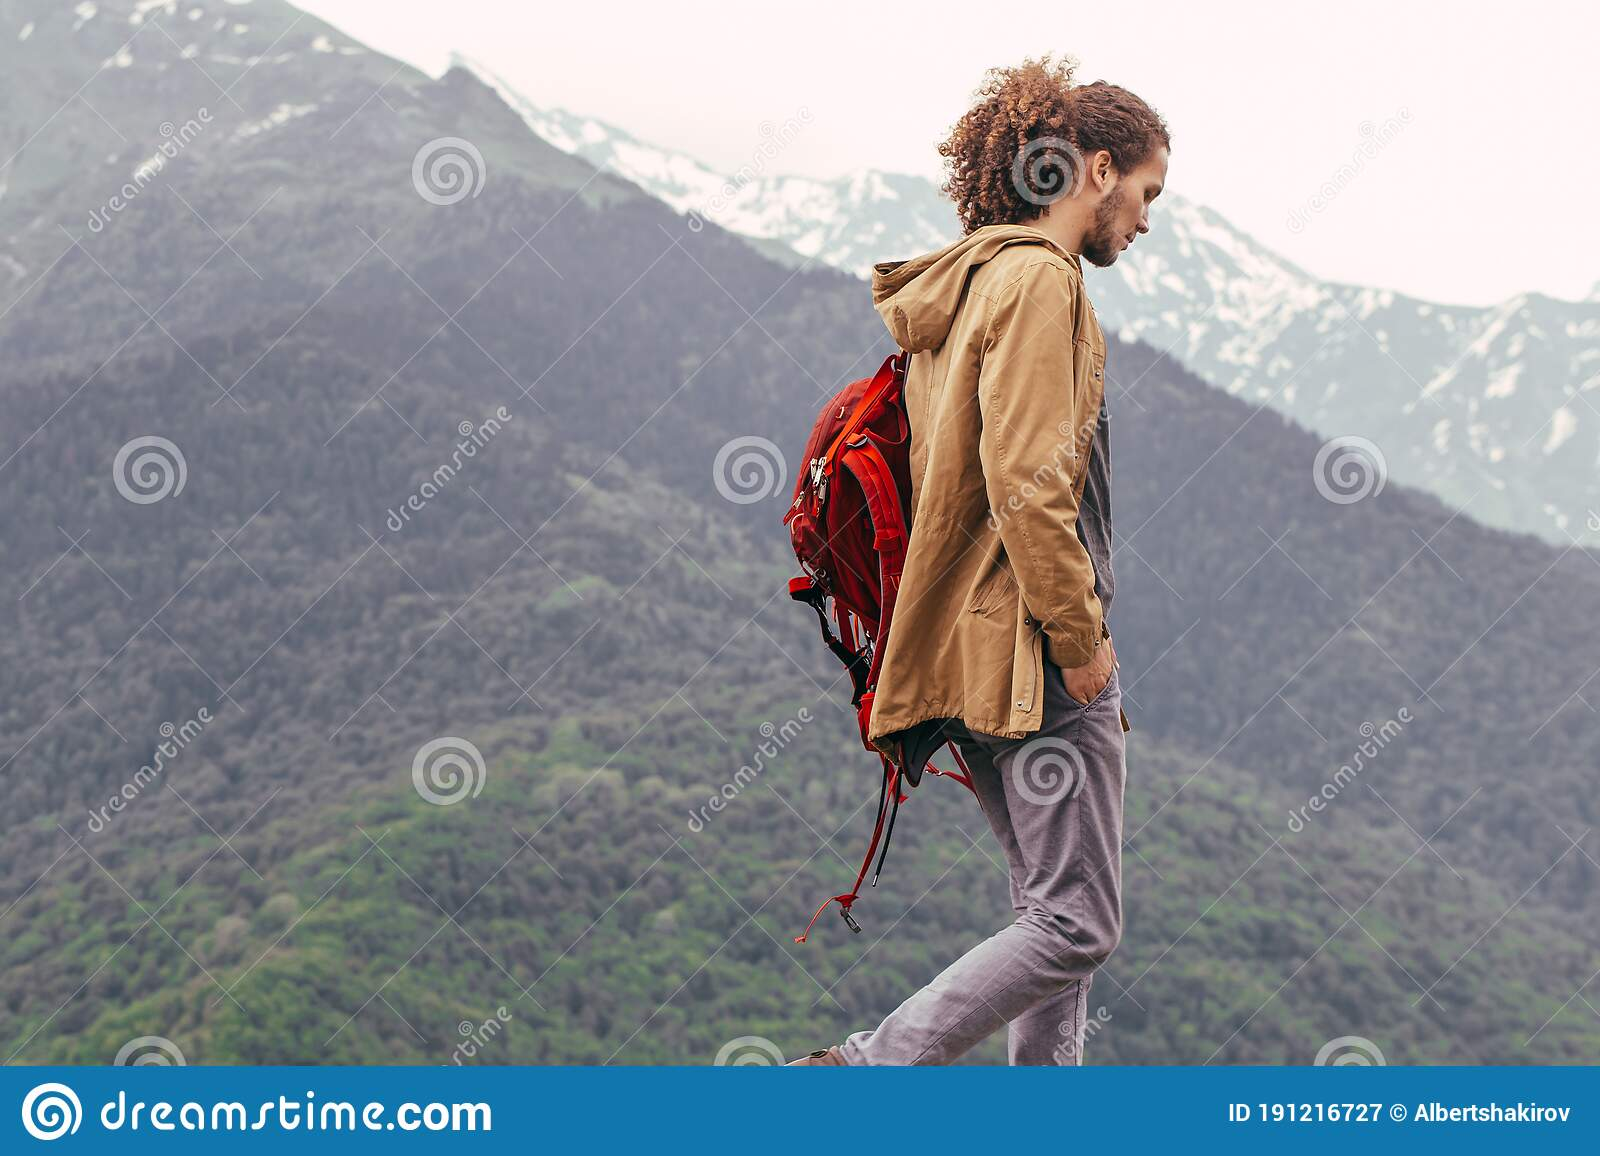 Traveler With Red Backpack Walking On Mountain Travel Lifestyle Adventure Vacations Freedom Concept Stock Image Image Of Concept Journey 191216727